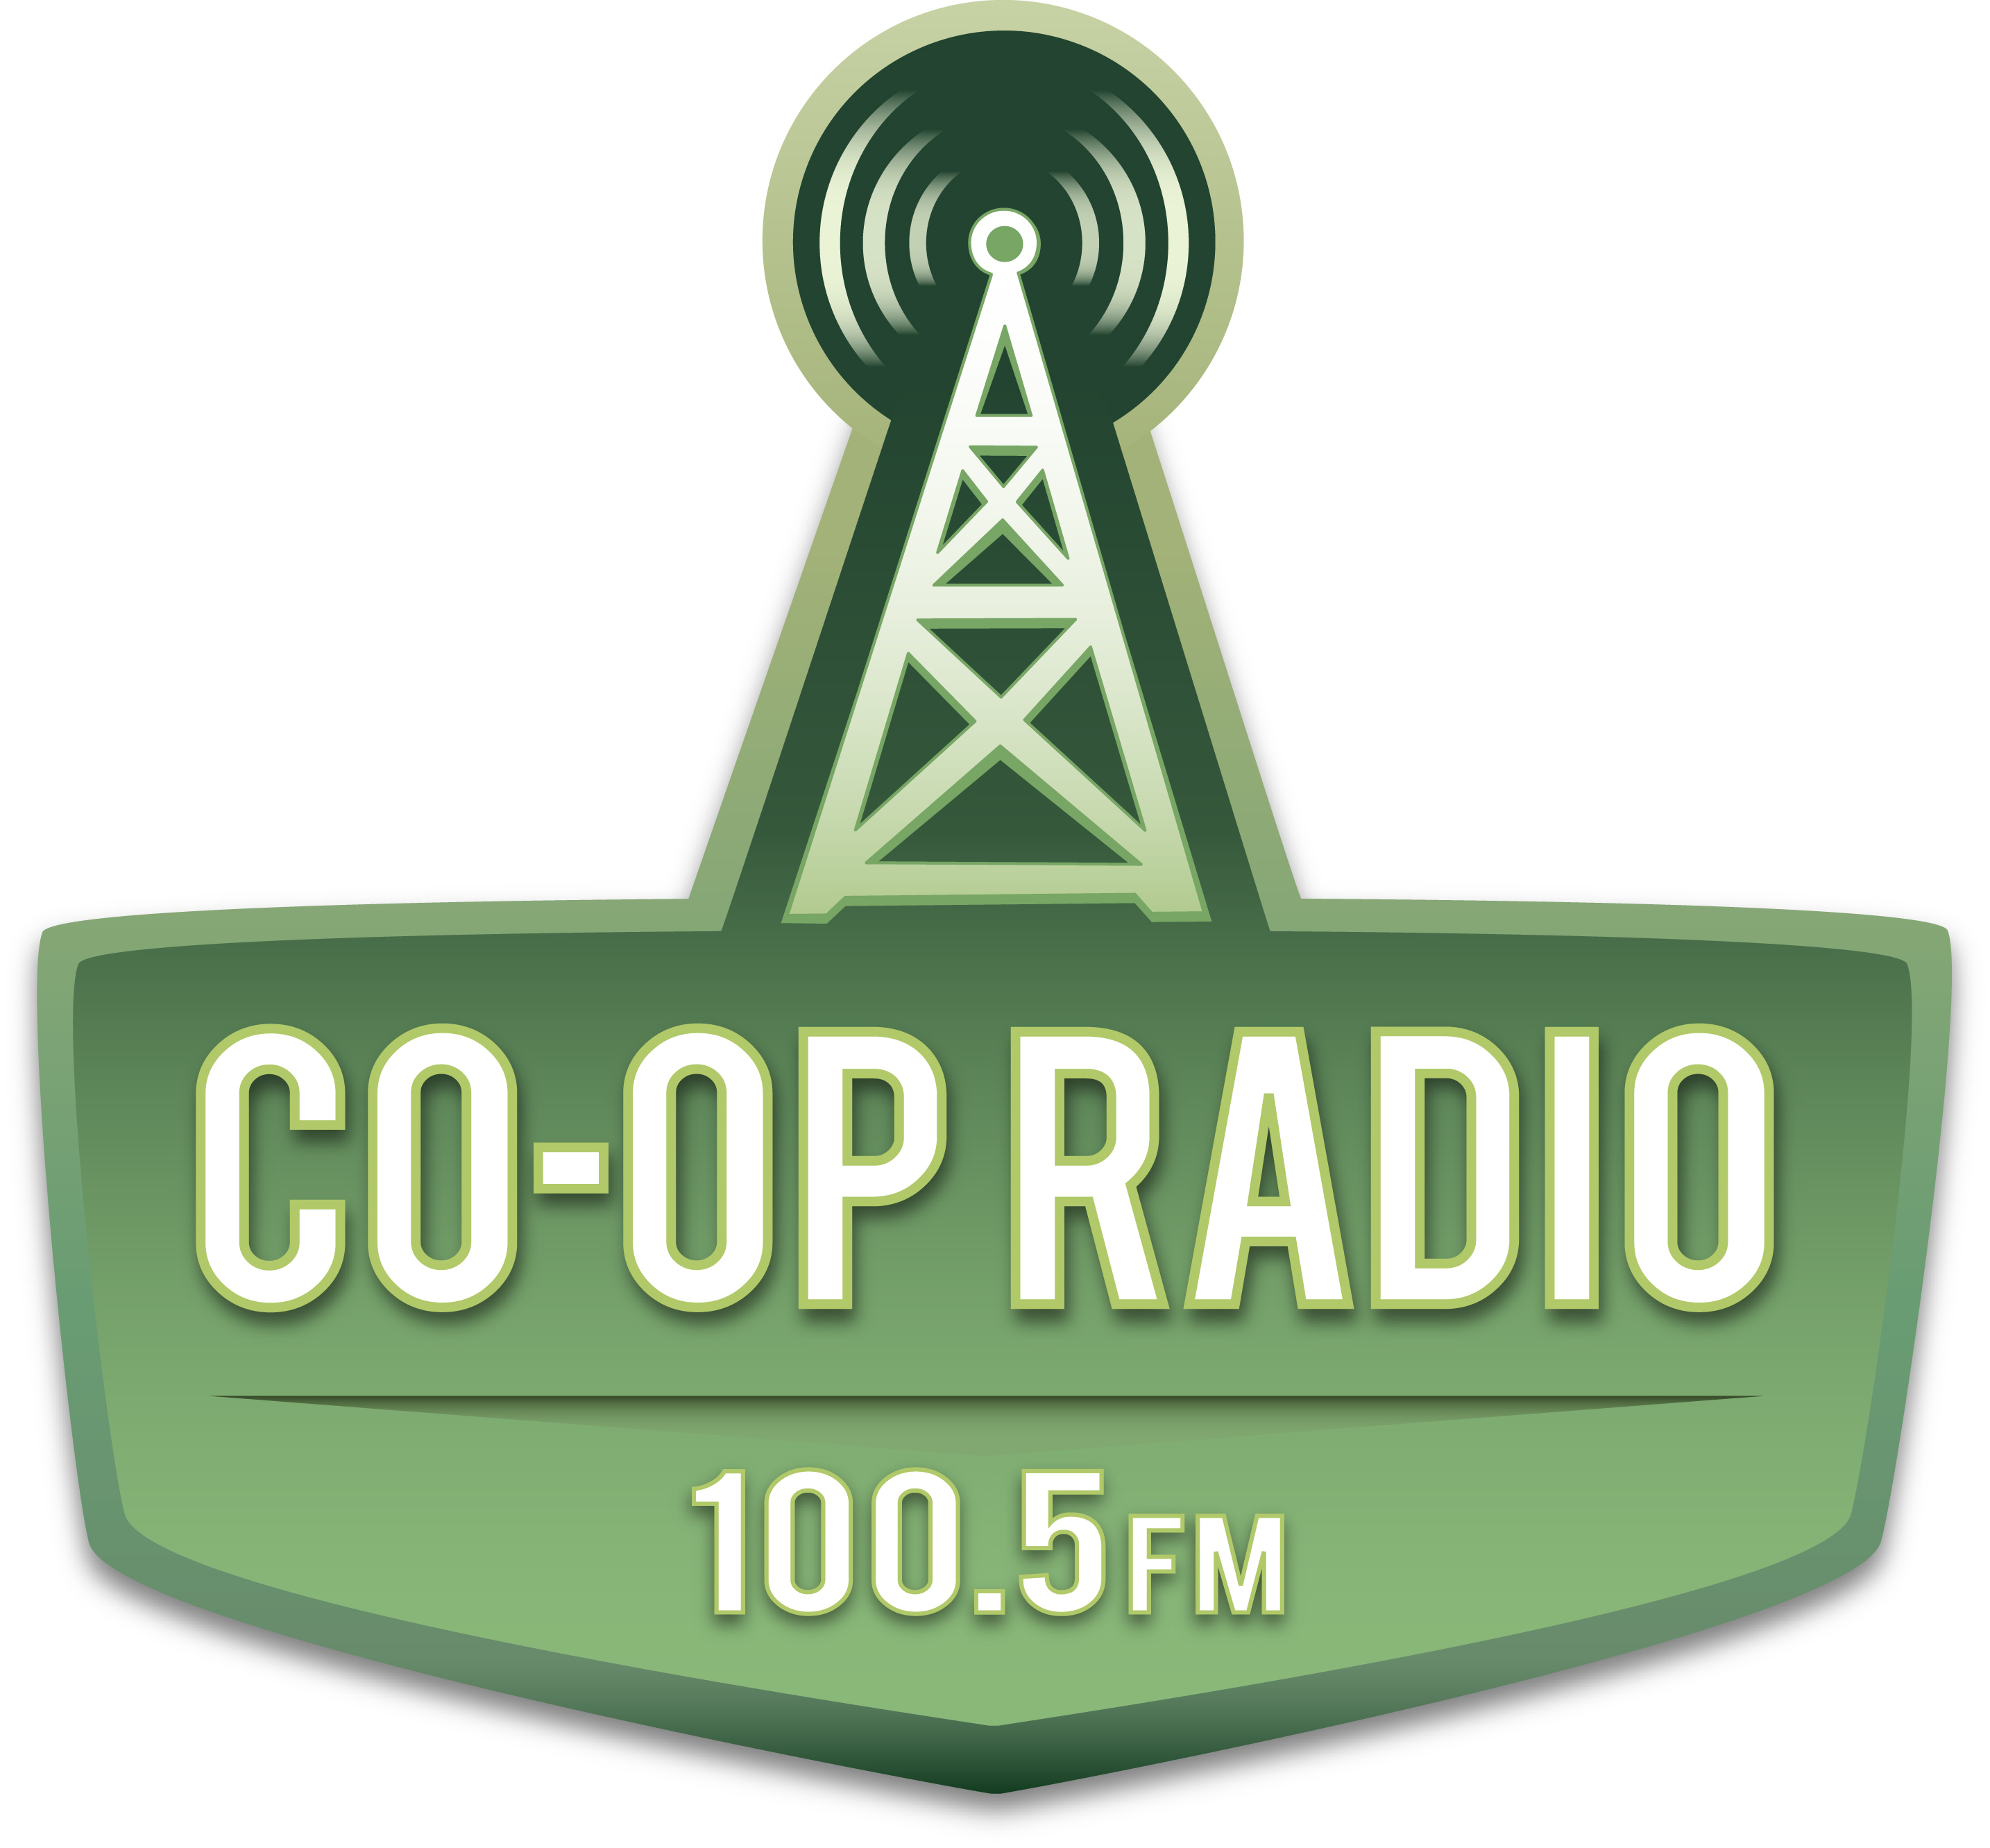 Co-op Radio 100.5FM